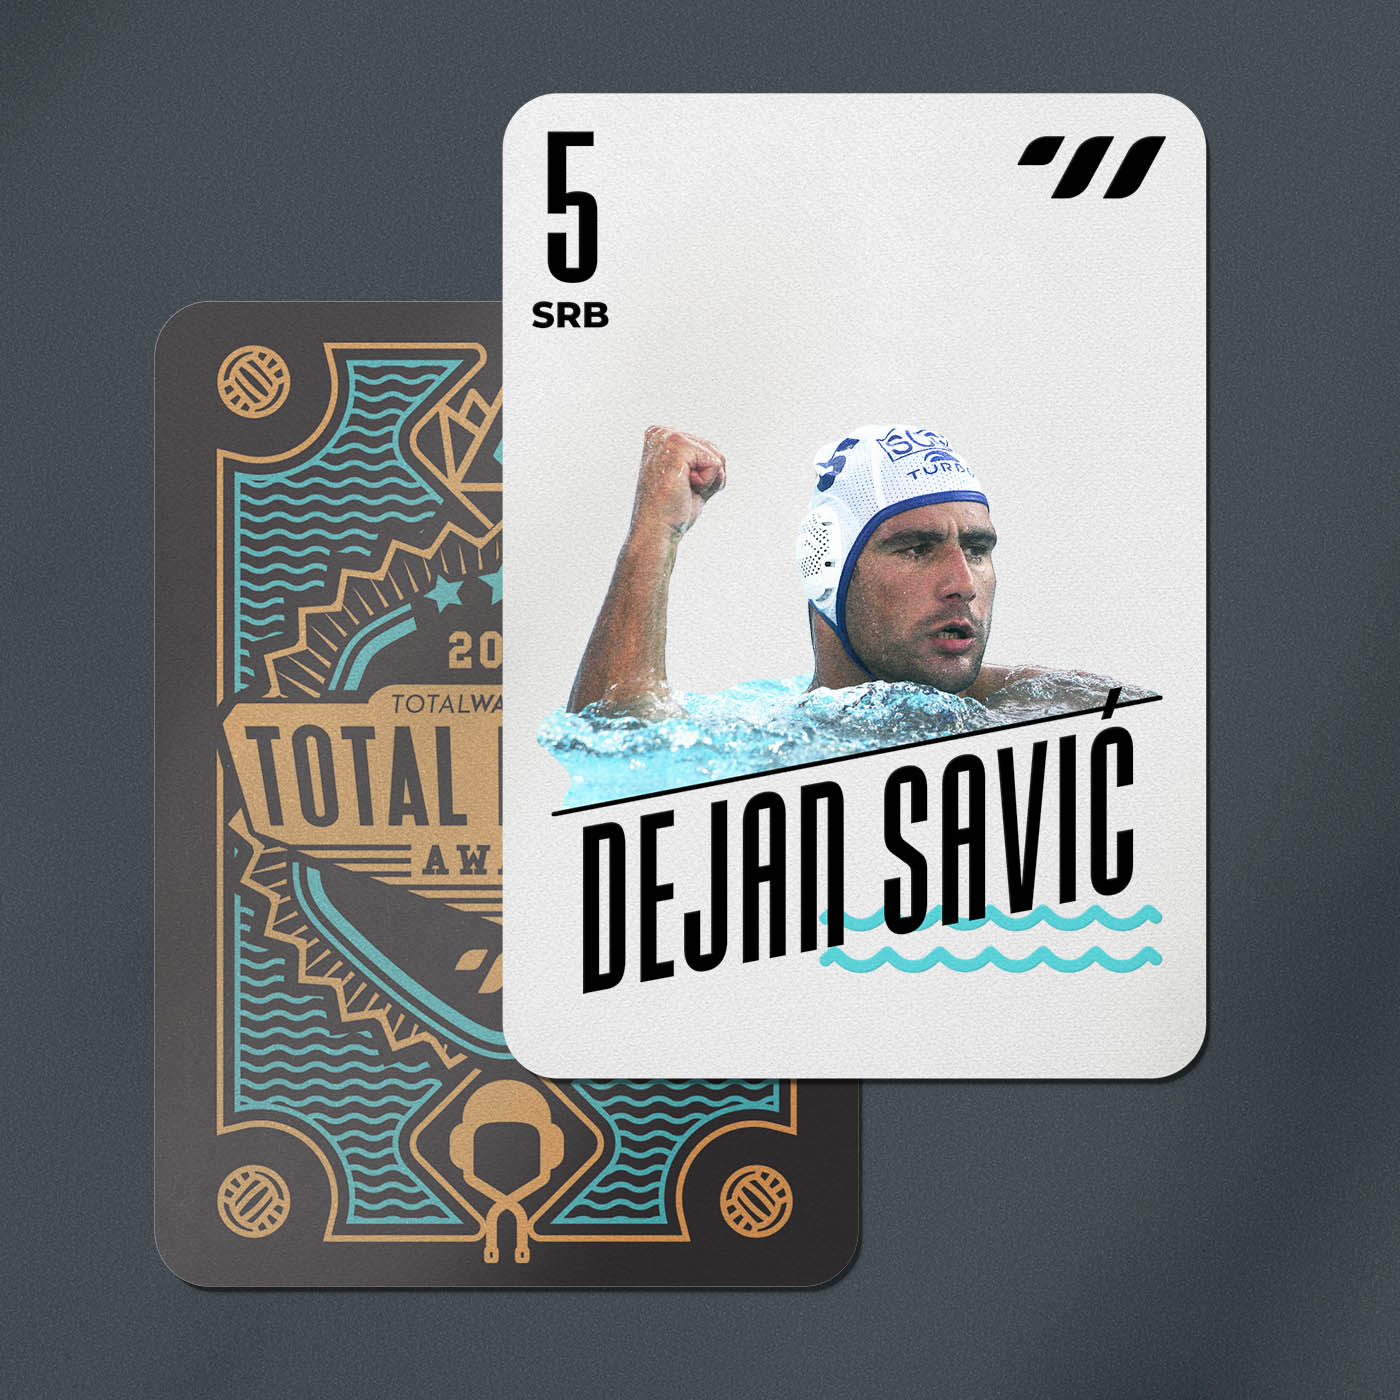 CENTER BACK - Dejan Savic (SRB)